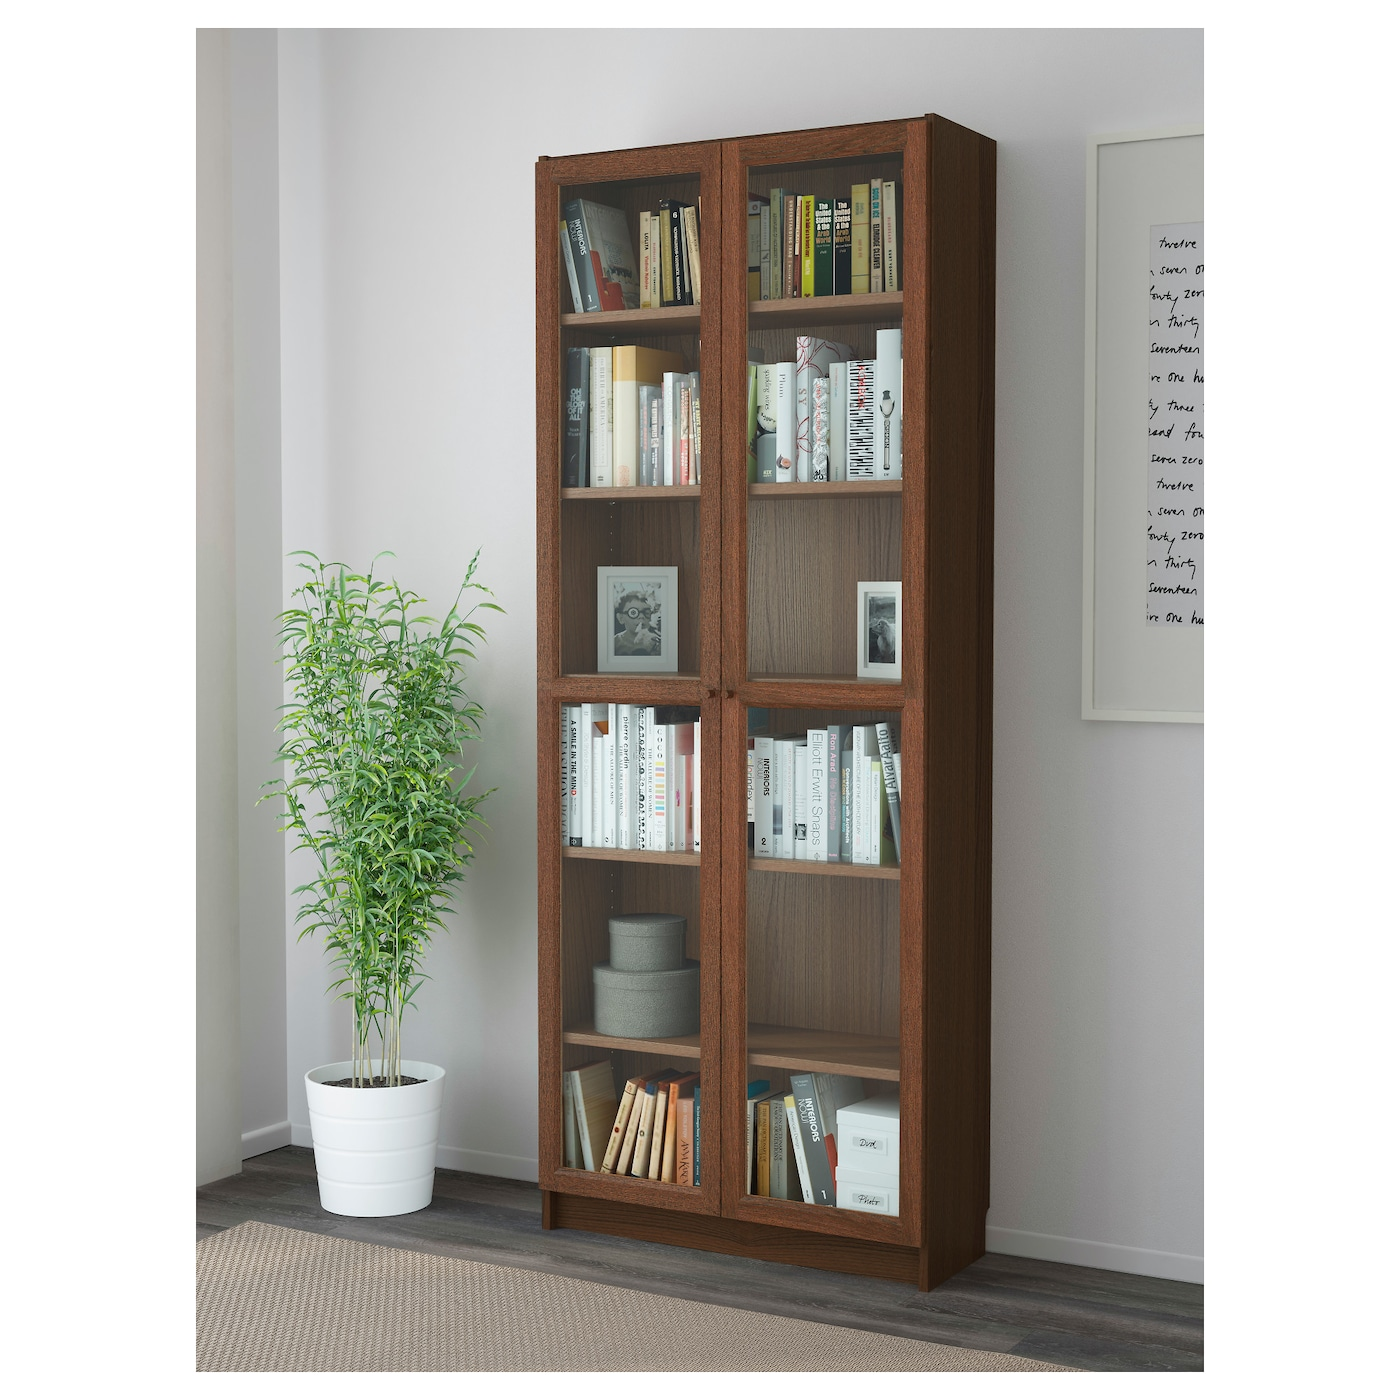 IKEA BILLY/OXBERG bookcase Adjustable shelves; adapt space between shelves according to your needs.